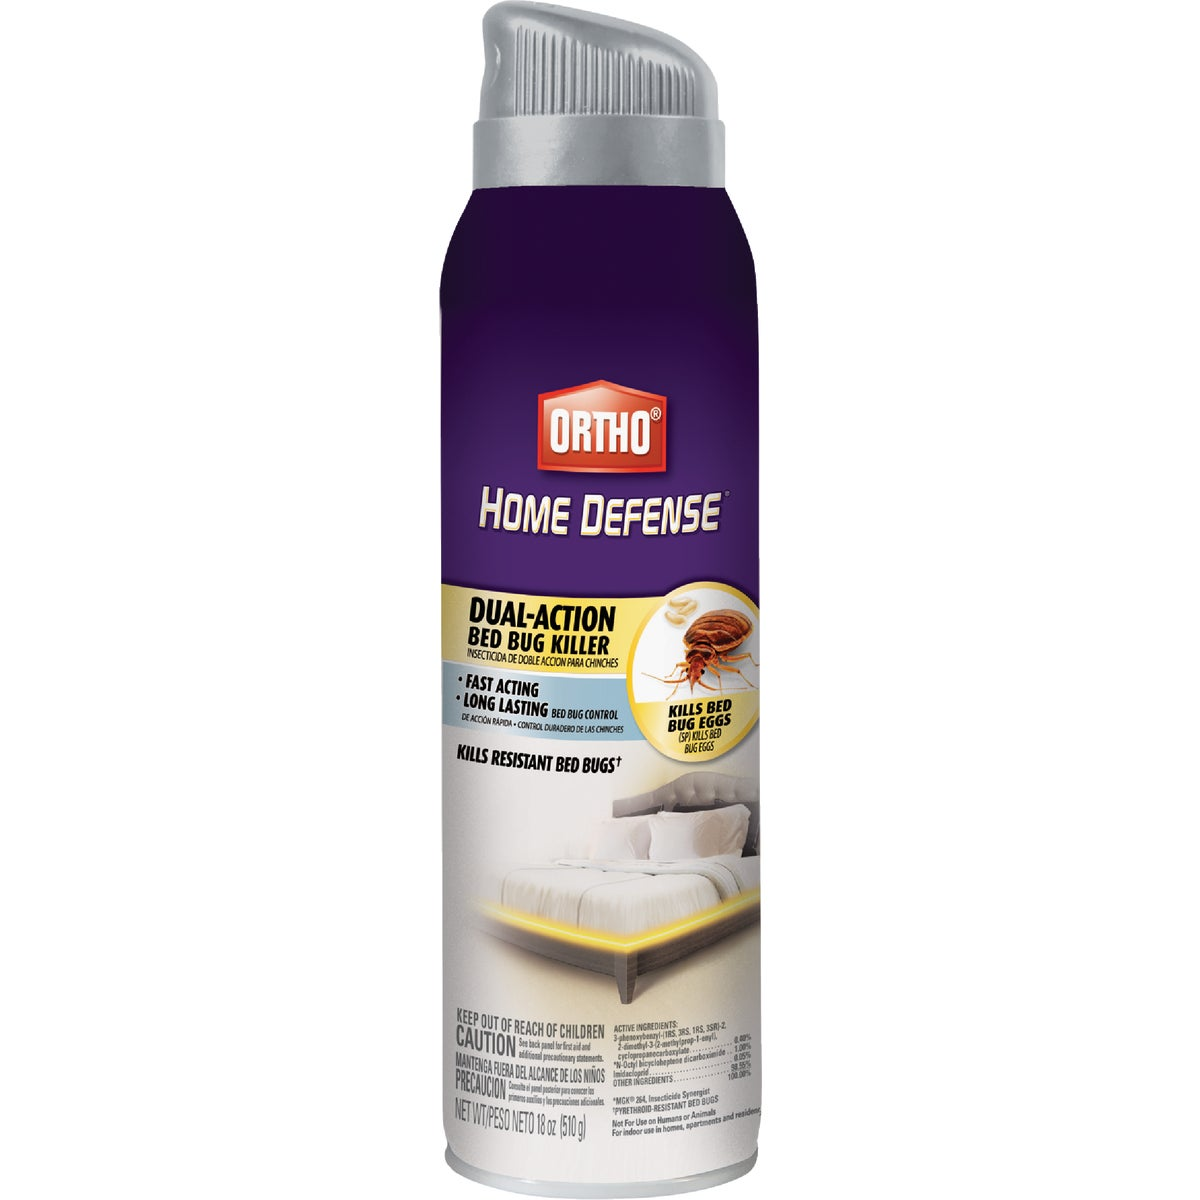 18OZ AERO BEDBUG KILLER - 0192910 by Scotts Company